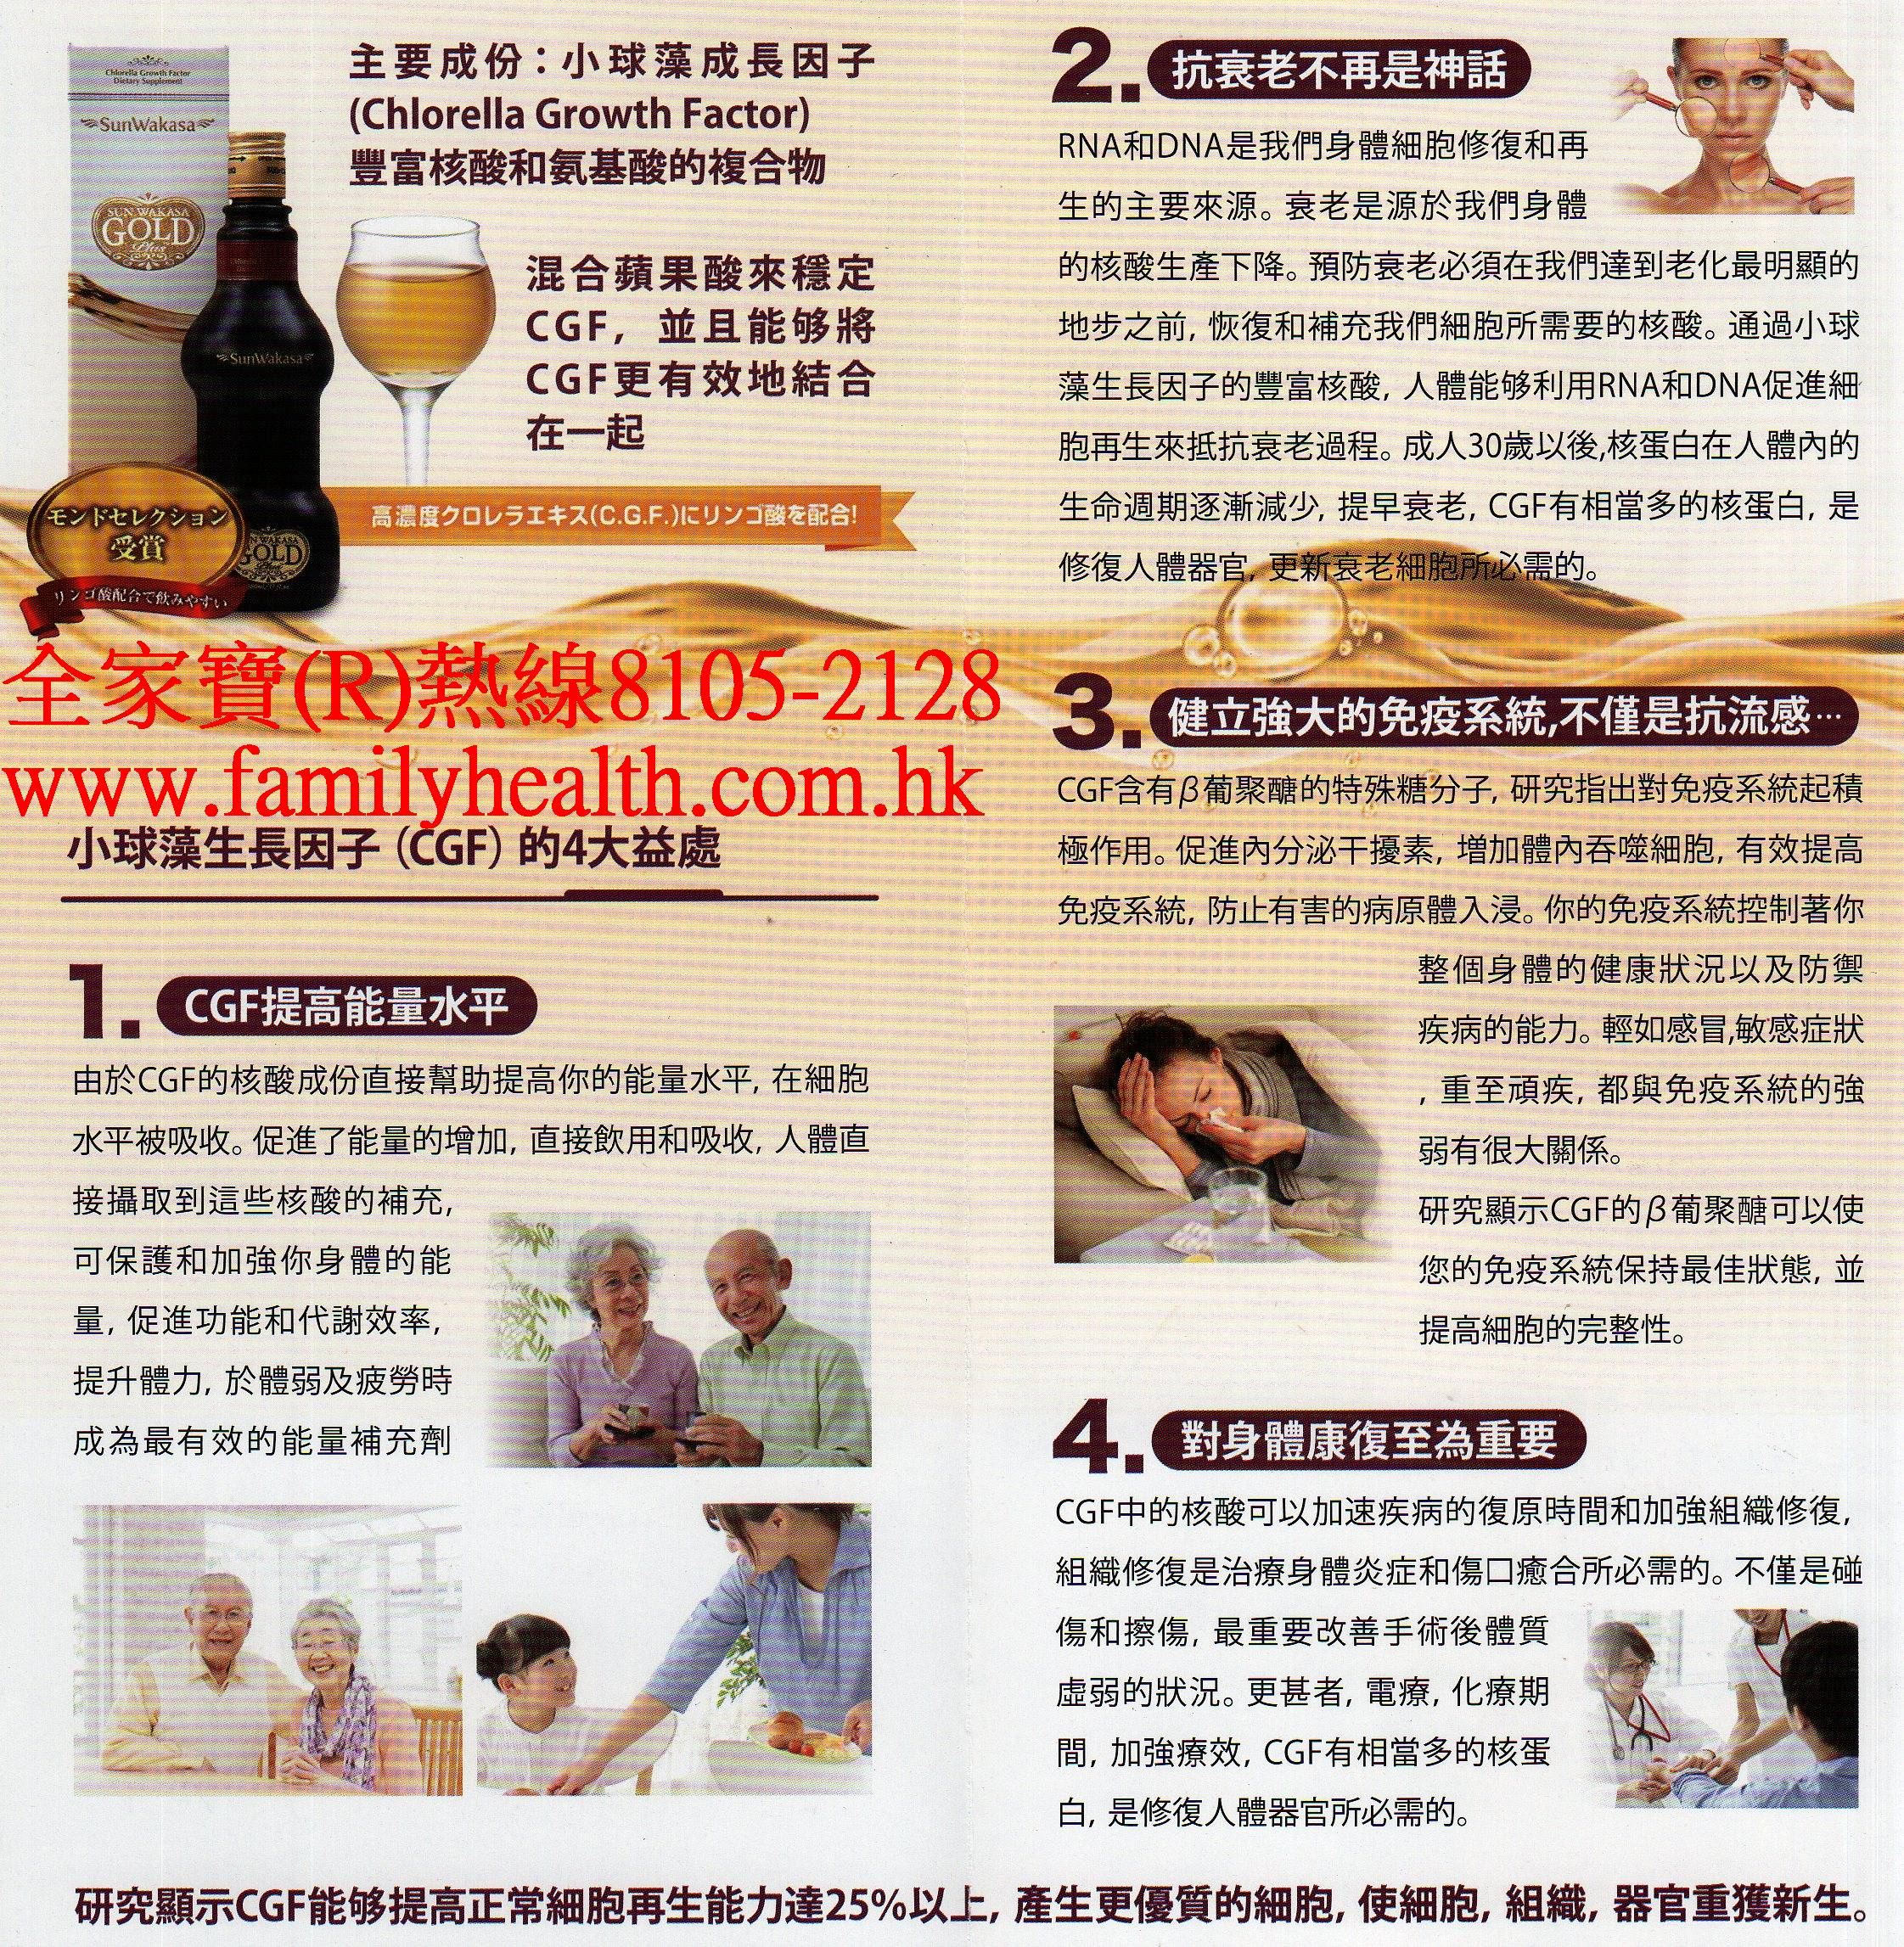 http://www.familyhealth.com.hk/files/full/1023_3.jpg